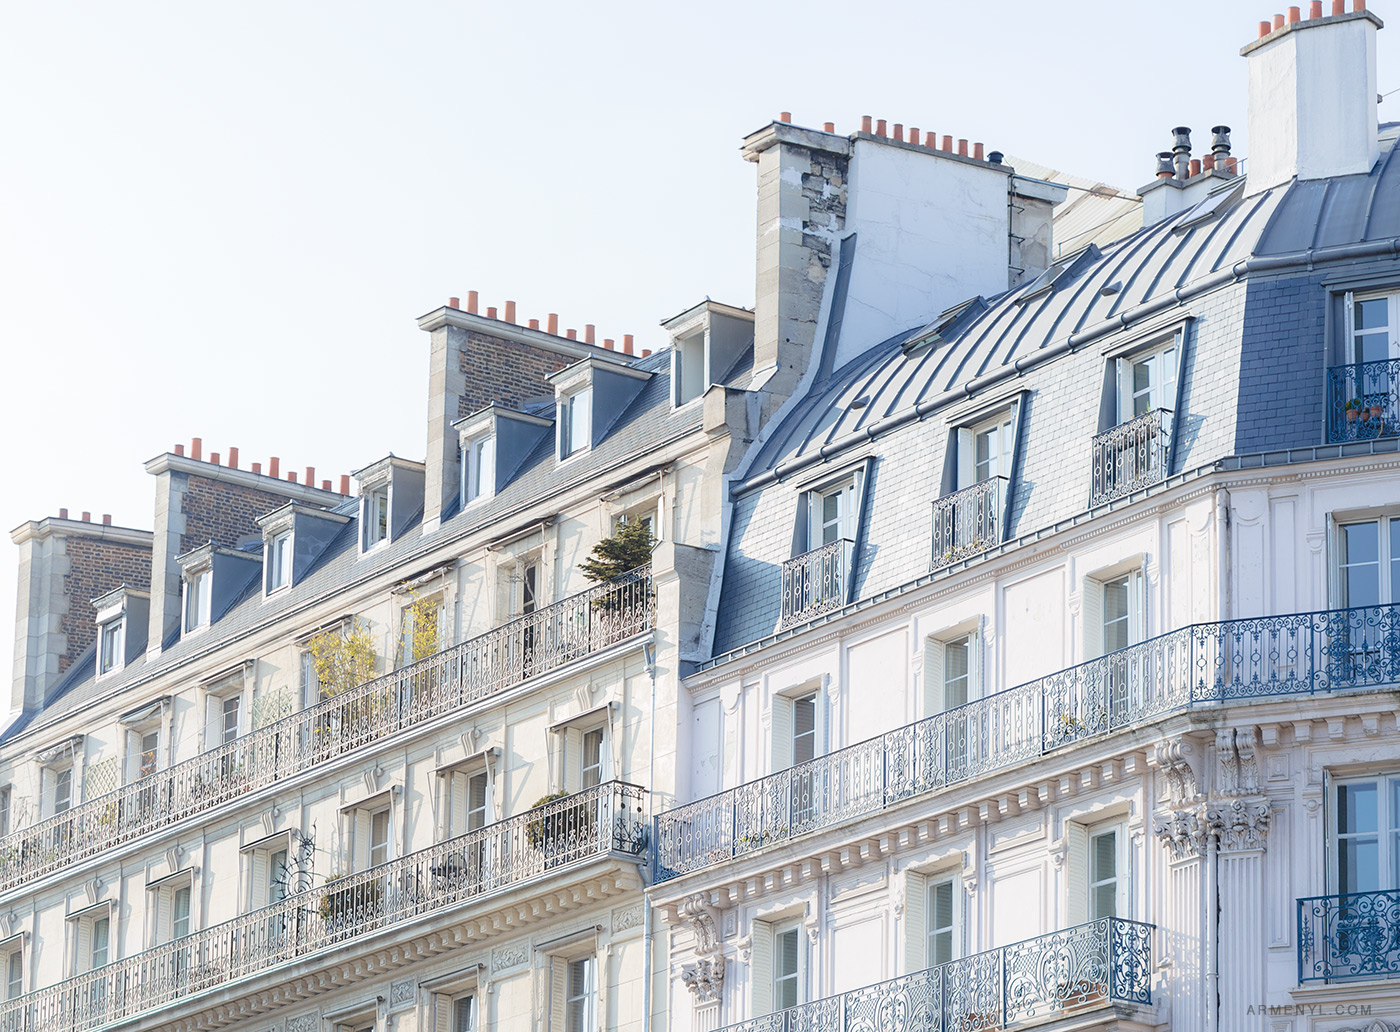 Parisian-buildings-and-rooftops-Sunny-day-in-Paris,-France-photographed-by-Armenyl.com